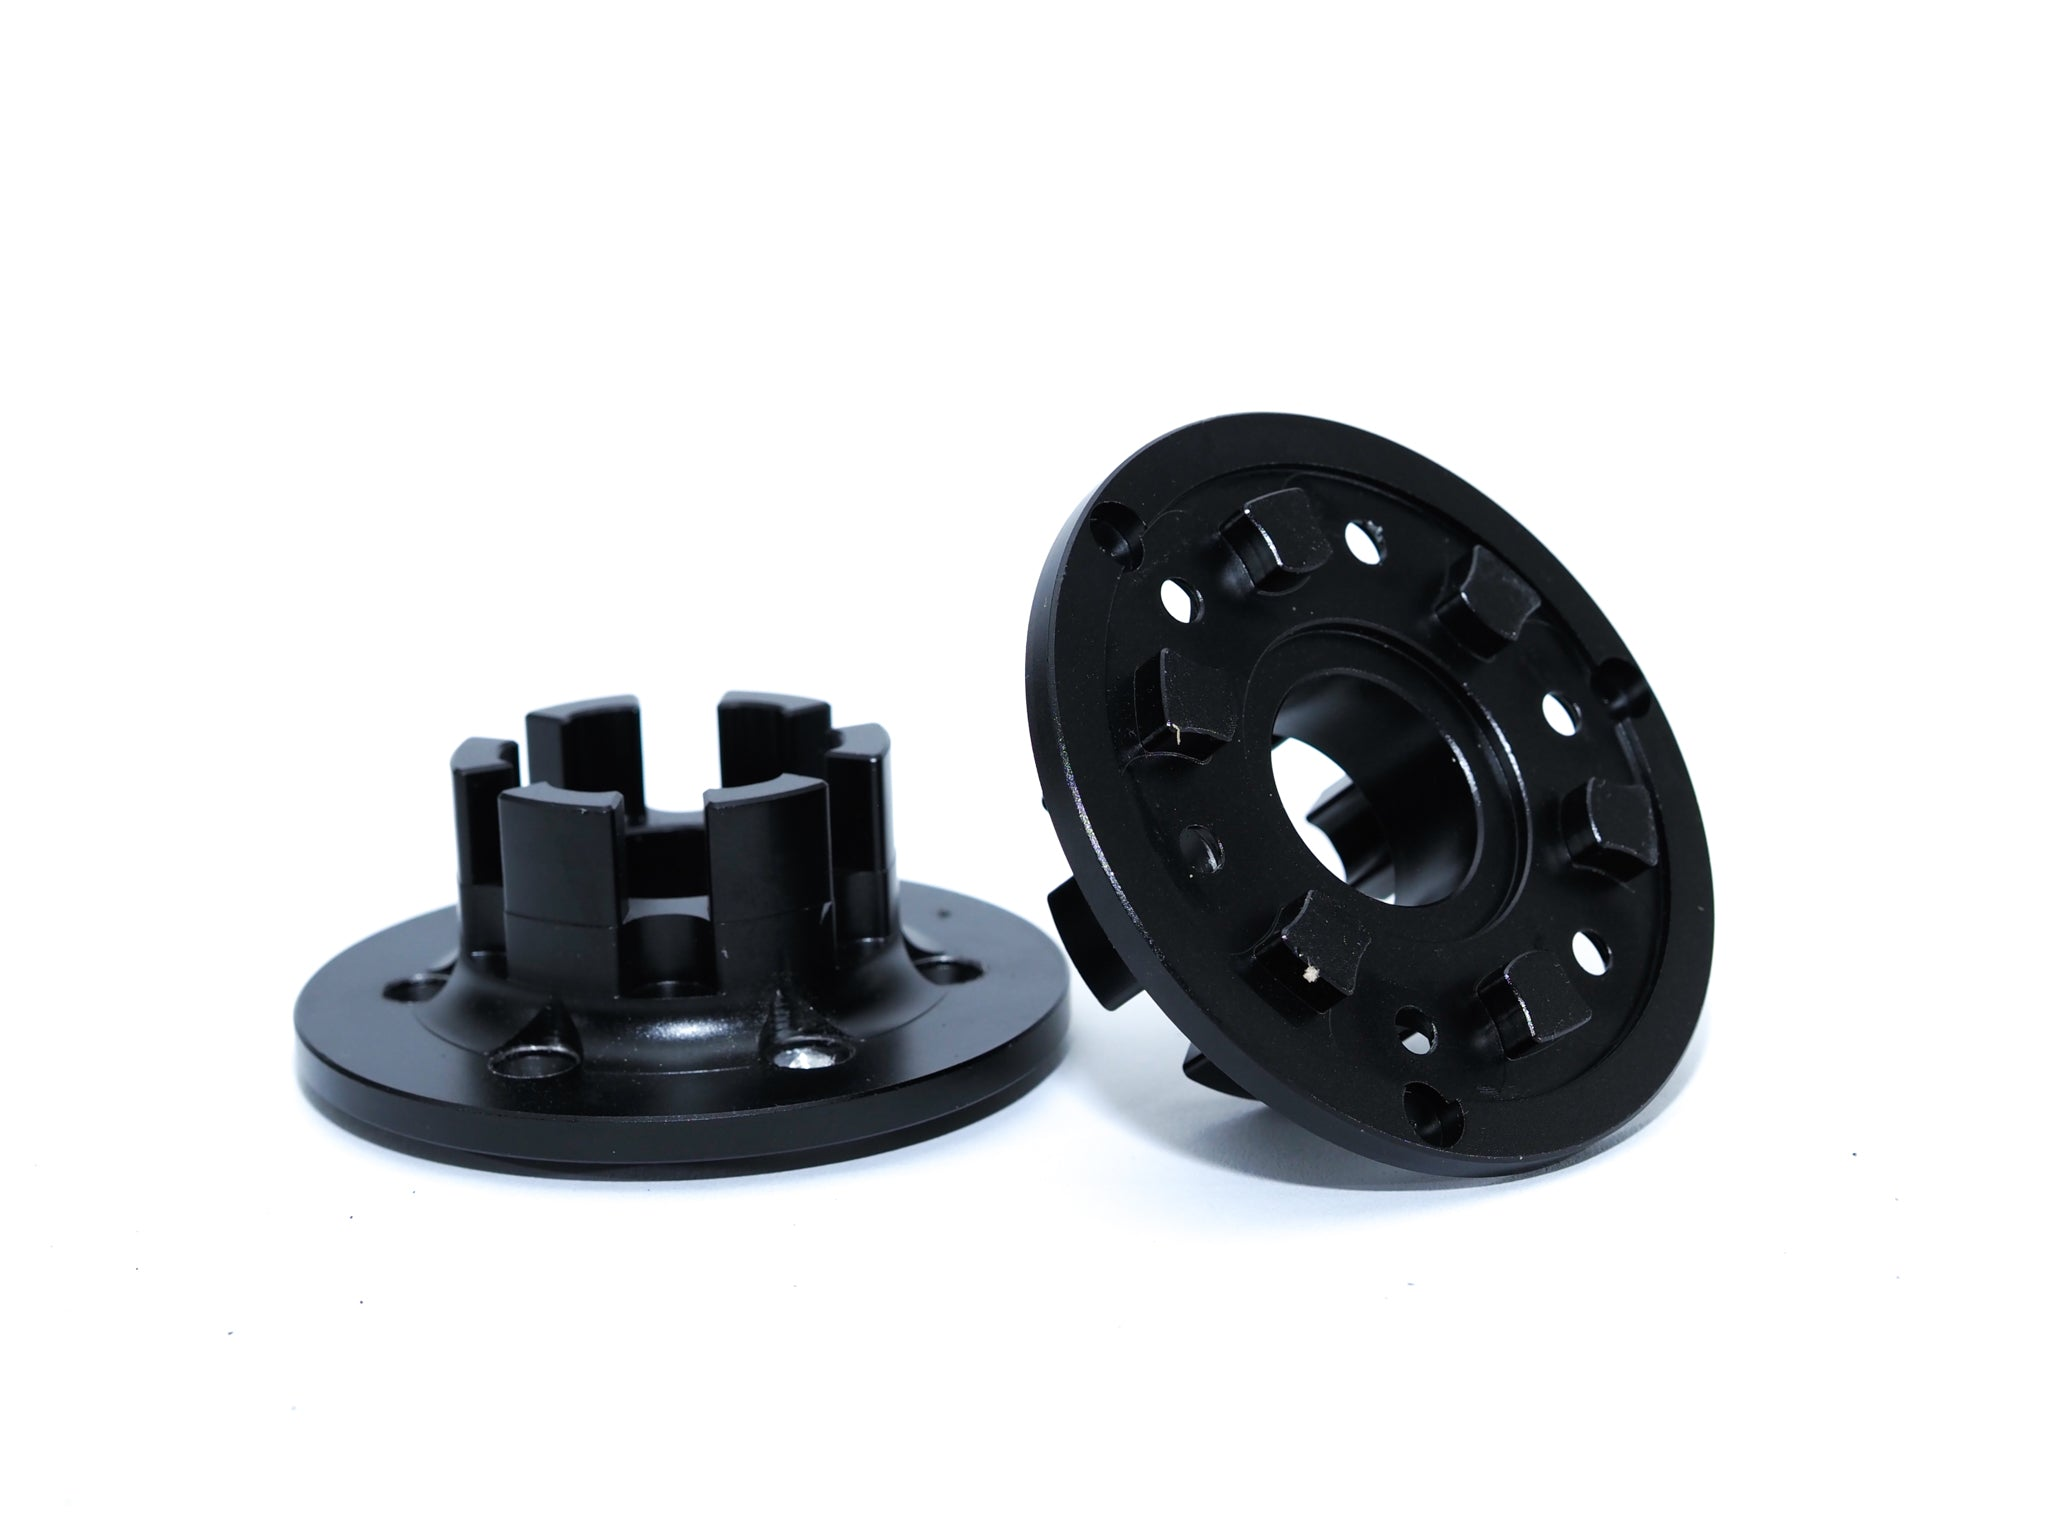 KEGEL or ABEC Adapter for Direct Drive Motor - ONSRA